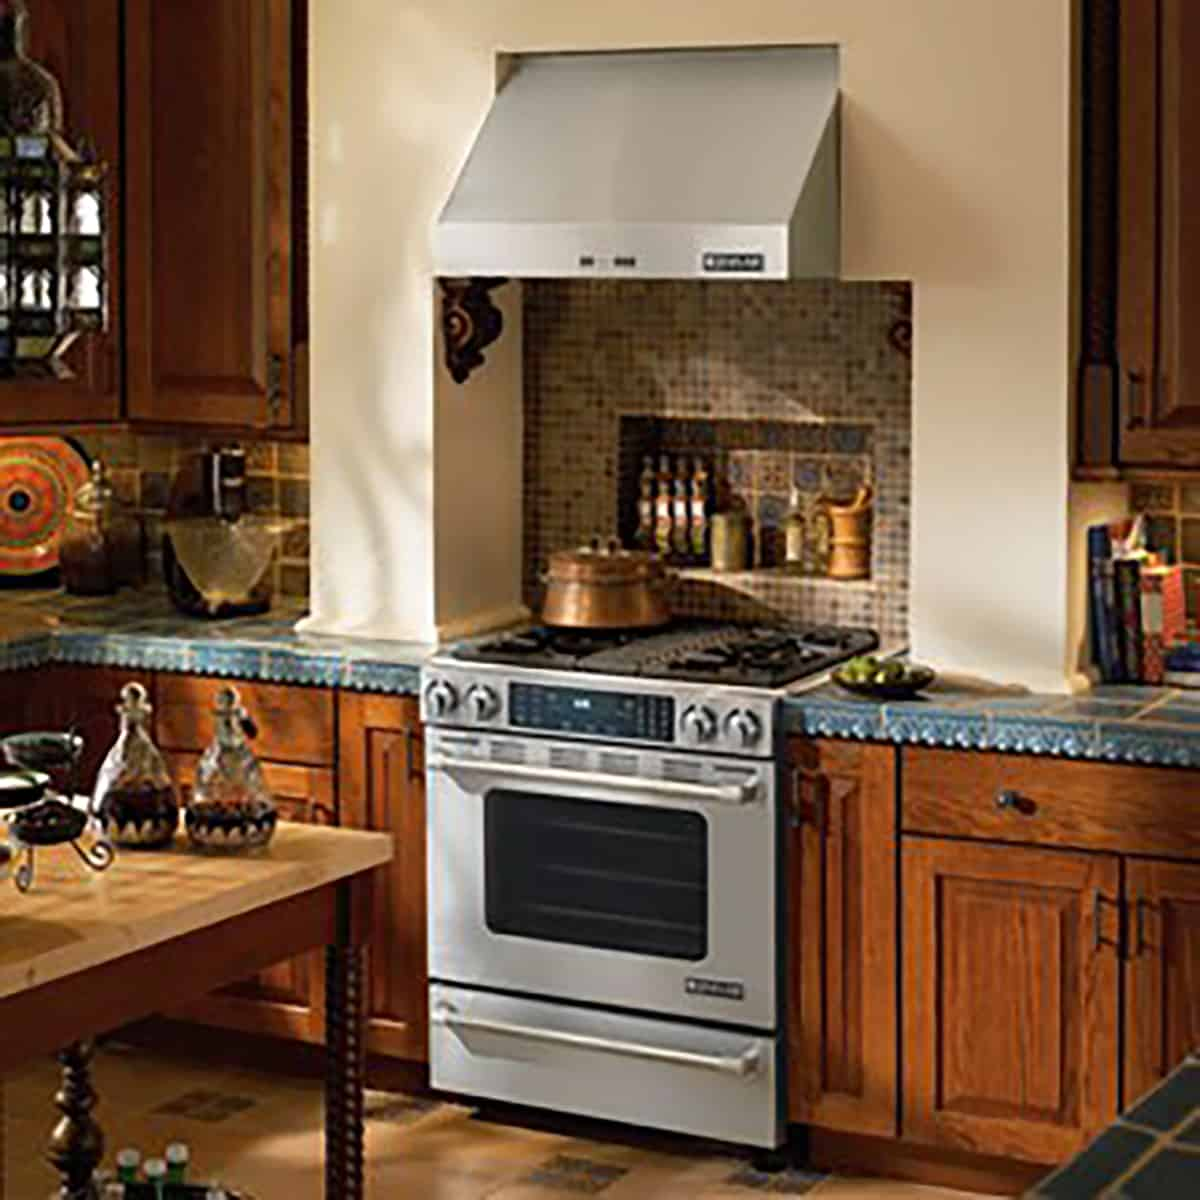 Kitchenaid Vs Jenn Air Slide In Gas Ranges Reviews